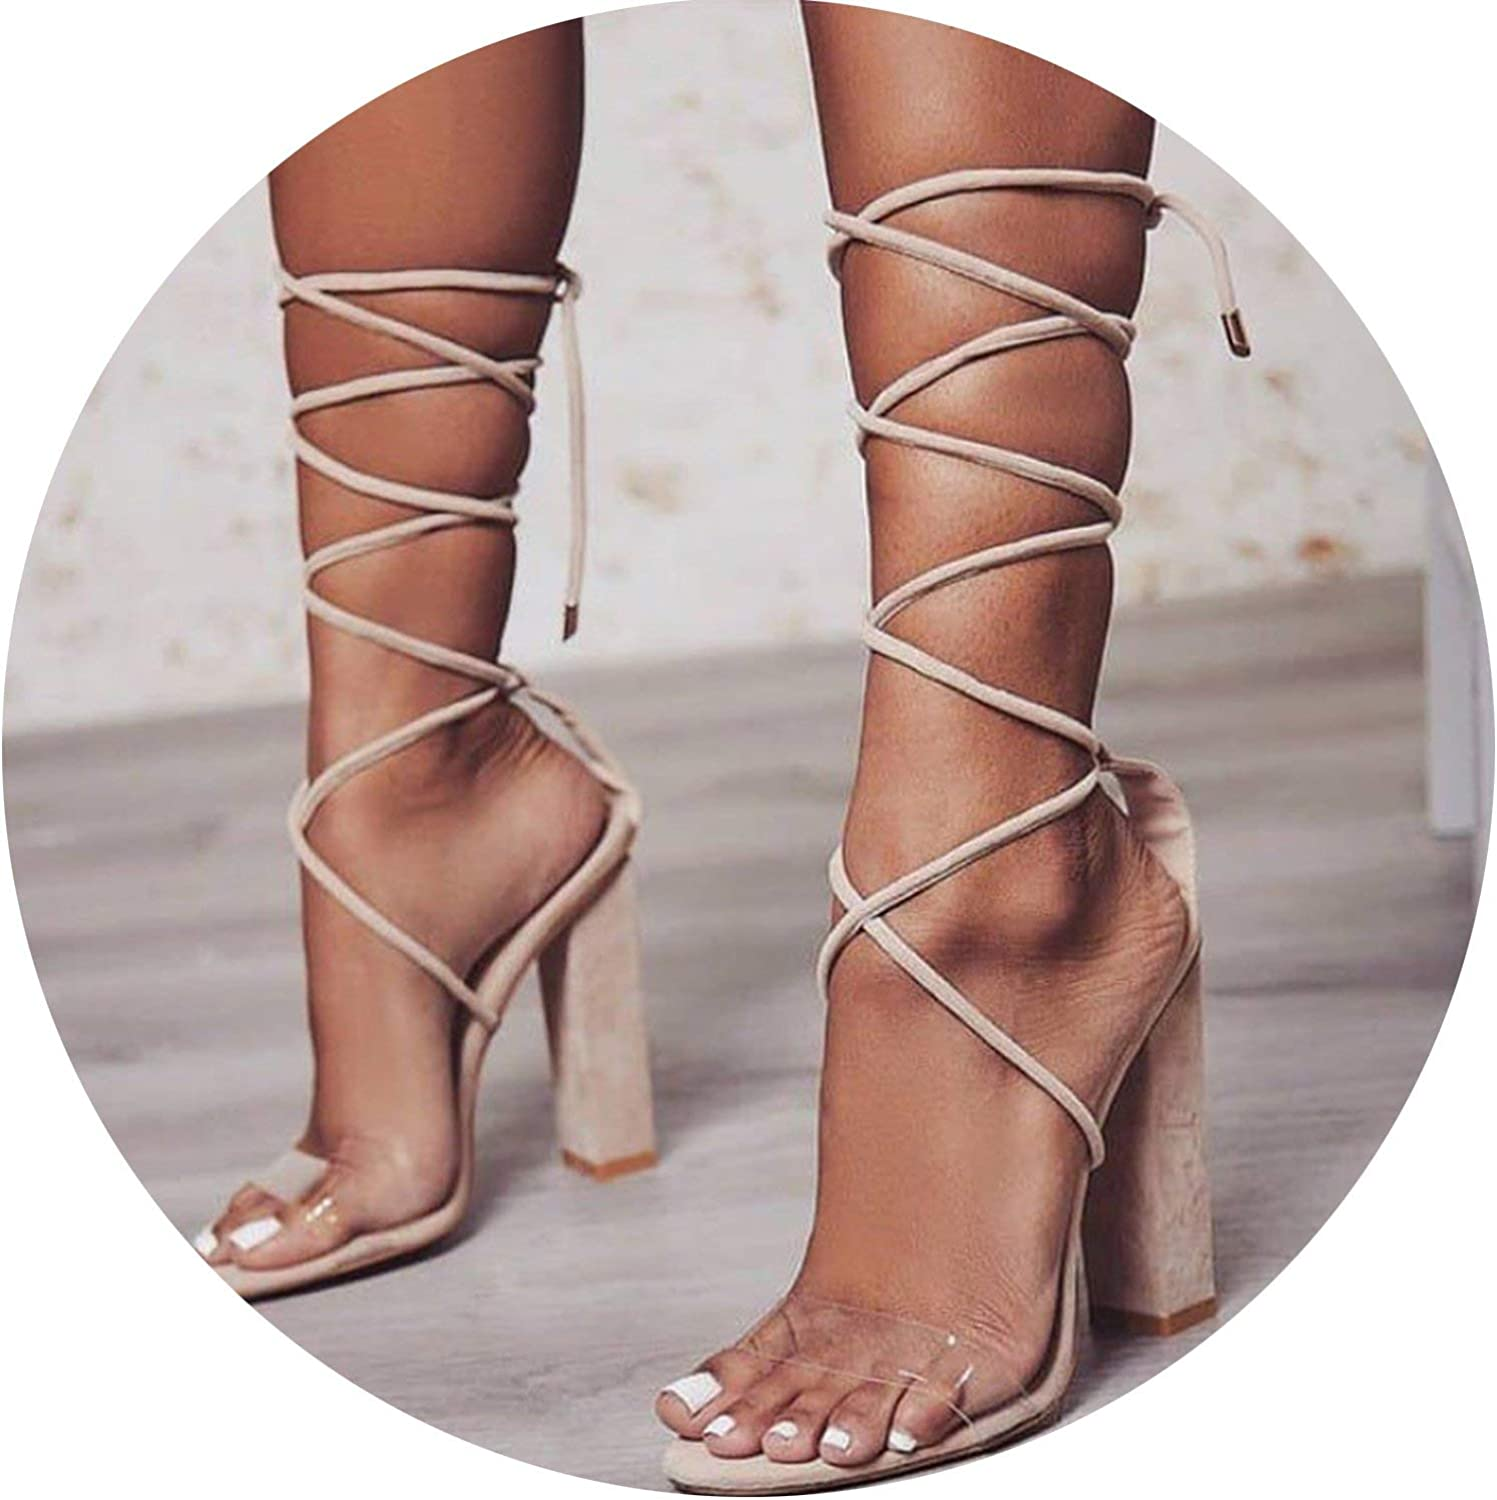 HANBINGPO XEK Women Pumps 2018 High Heels Sandals PVC Transparent Women Heels Wedding shoes Women Casual Waterproof Sandalia Feminina WFQ88